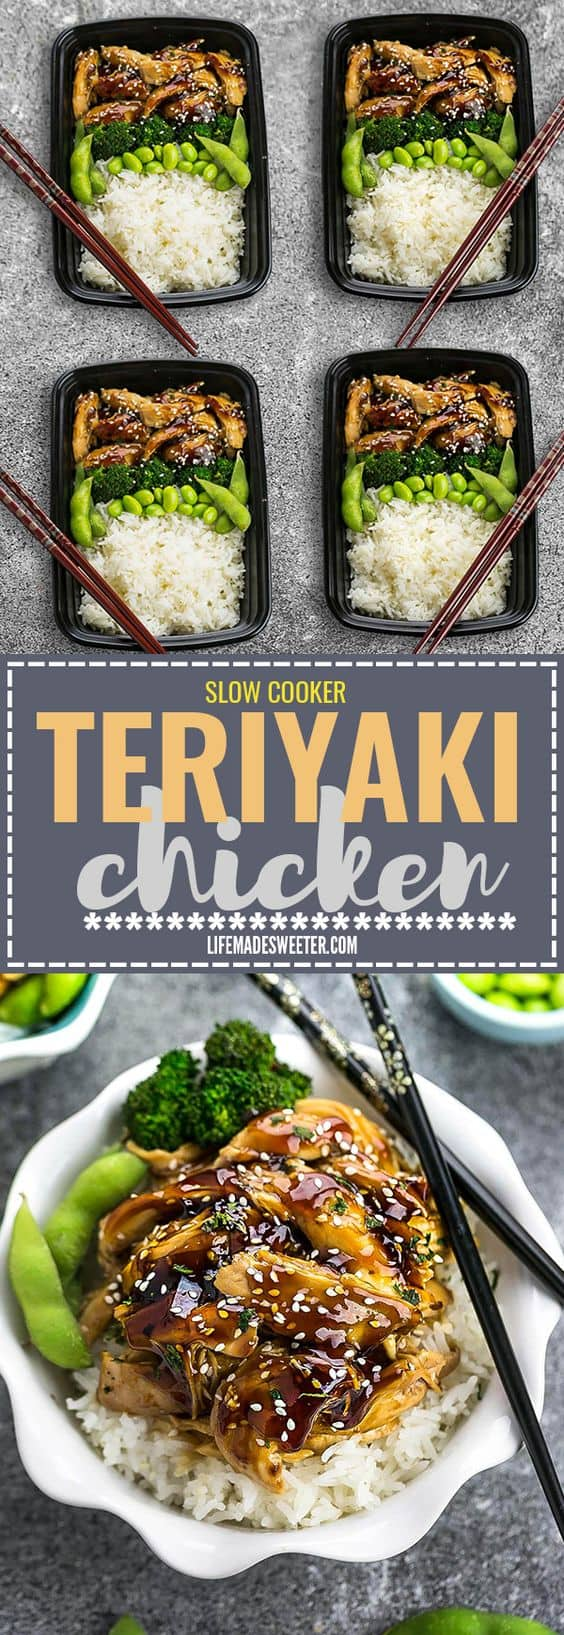 Slow Cooker or Instant Pot Teriyaki Chicken coated in a homemade sweet and savory Teriyaki sauce that is even better than your local Japanese takeout restaurant! Best of all, it's full of authentic flavors and super easy to make with just 10 minutes of prep time. Skip the takeout menu! This is so much better and healthier! Weekly meal prep or leftovers are great for lunch bowls or lunchboxes for work or school. Instructions for crock-pot and Instant Pot pressure cooker